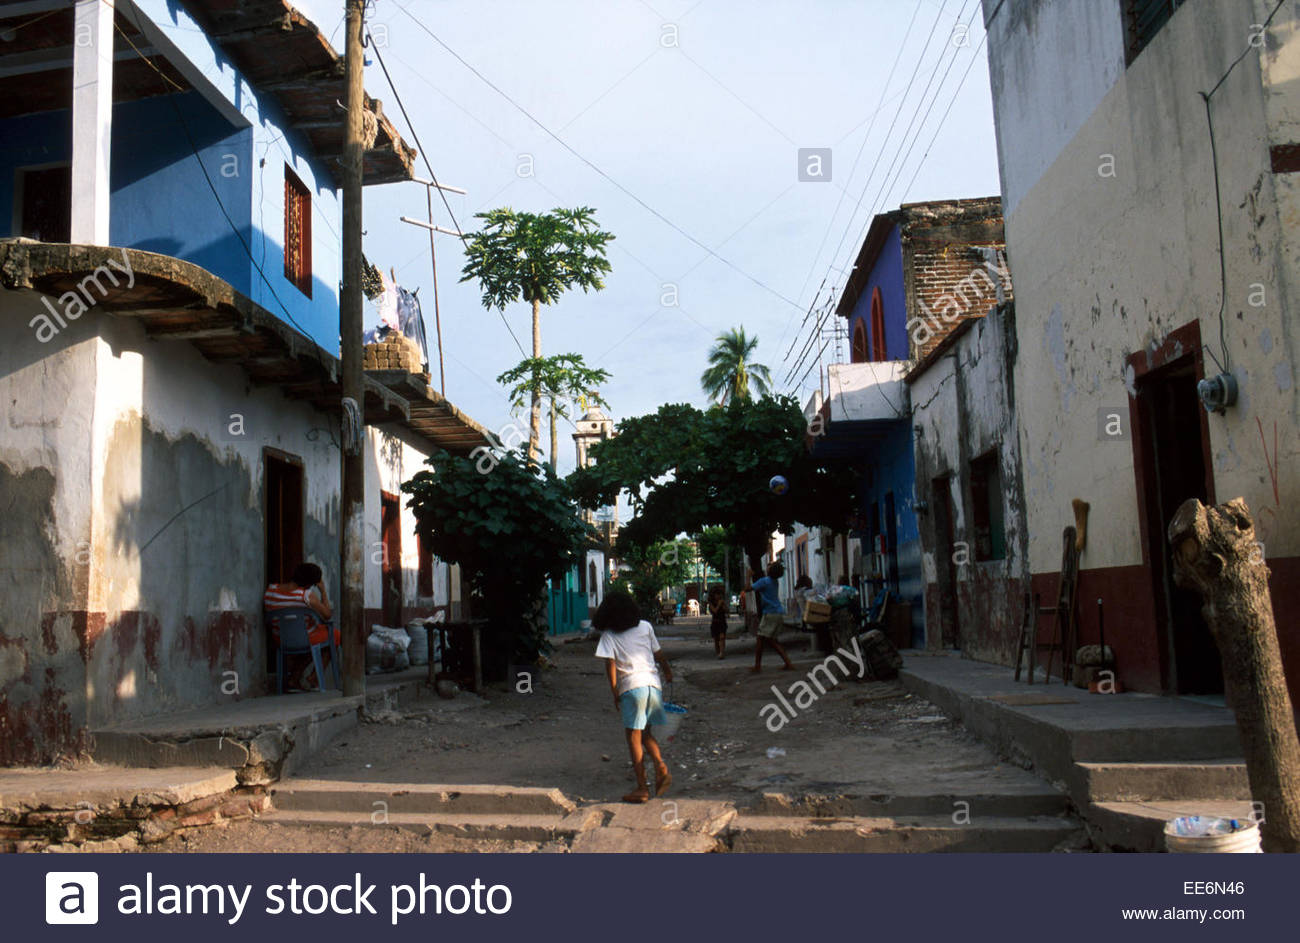 Mexcaltitan, Street in the village - Stock Image